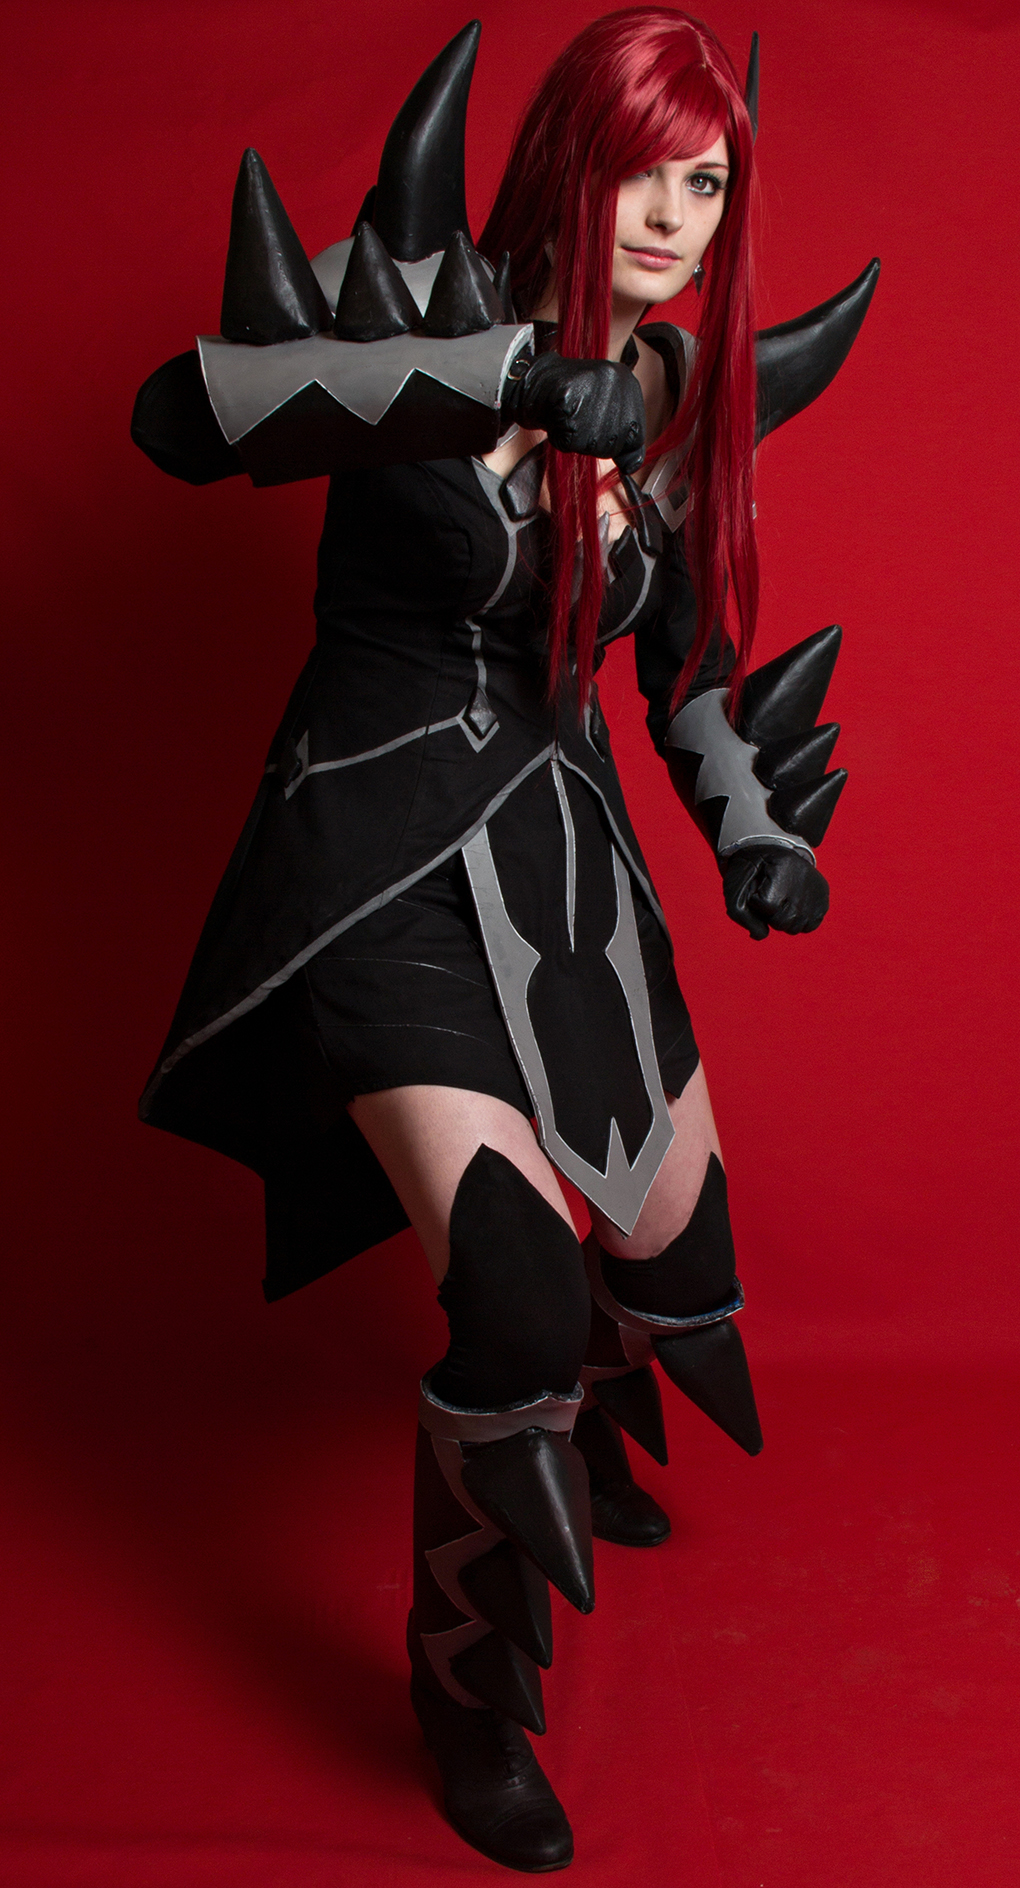 scarlet erza cosplay purgatory armor by arrysia daily